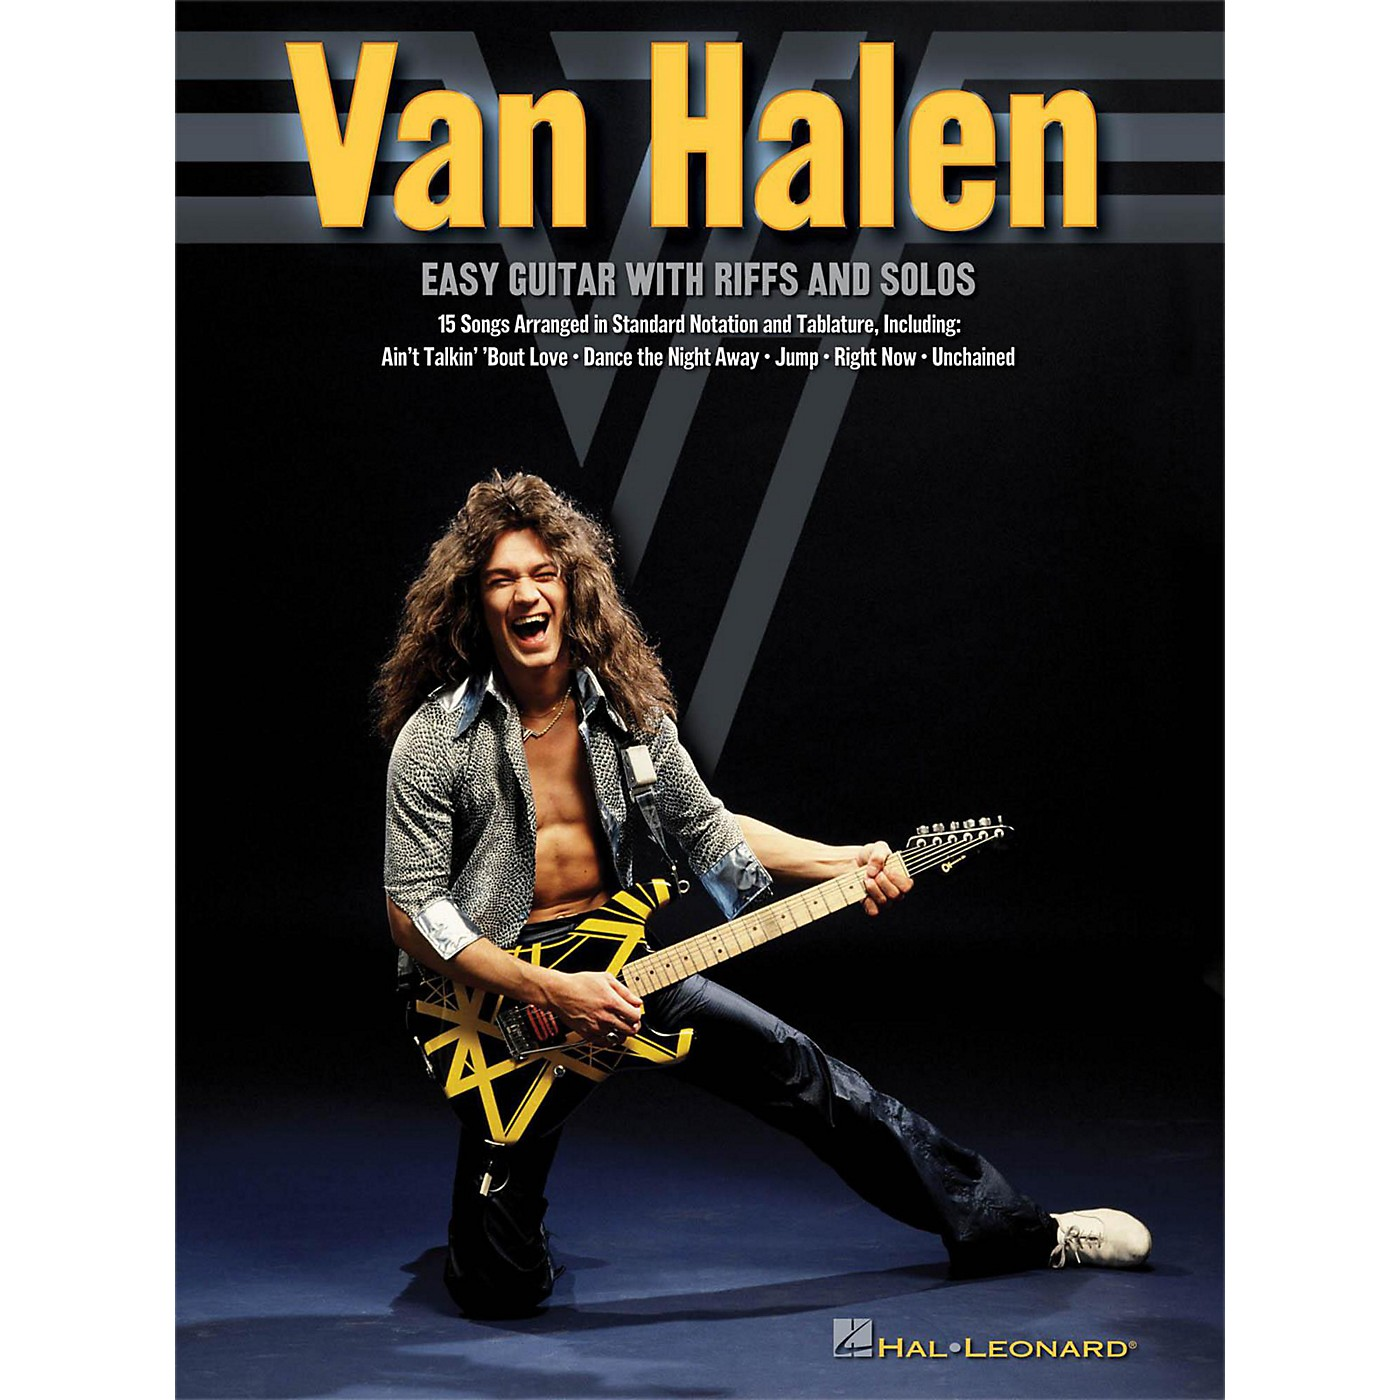 Hal Leonard Van Halen - Easy Guitar With Riffs And Solos (With Tab) thumbnail